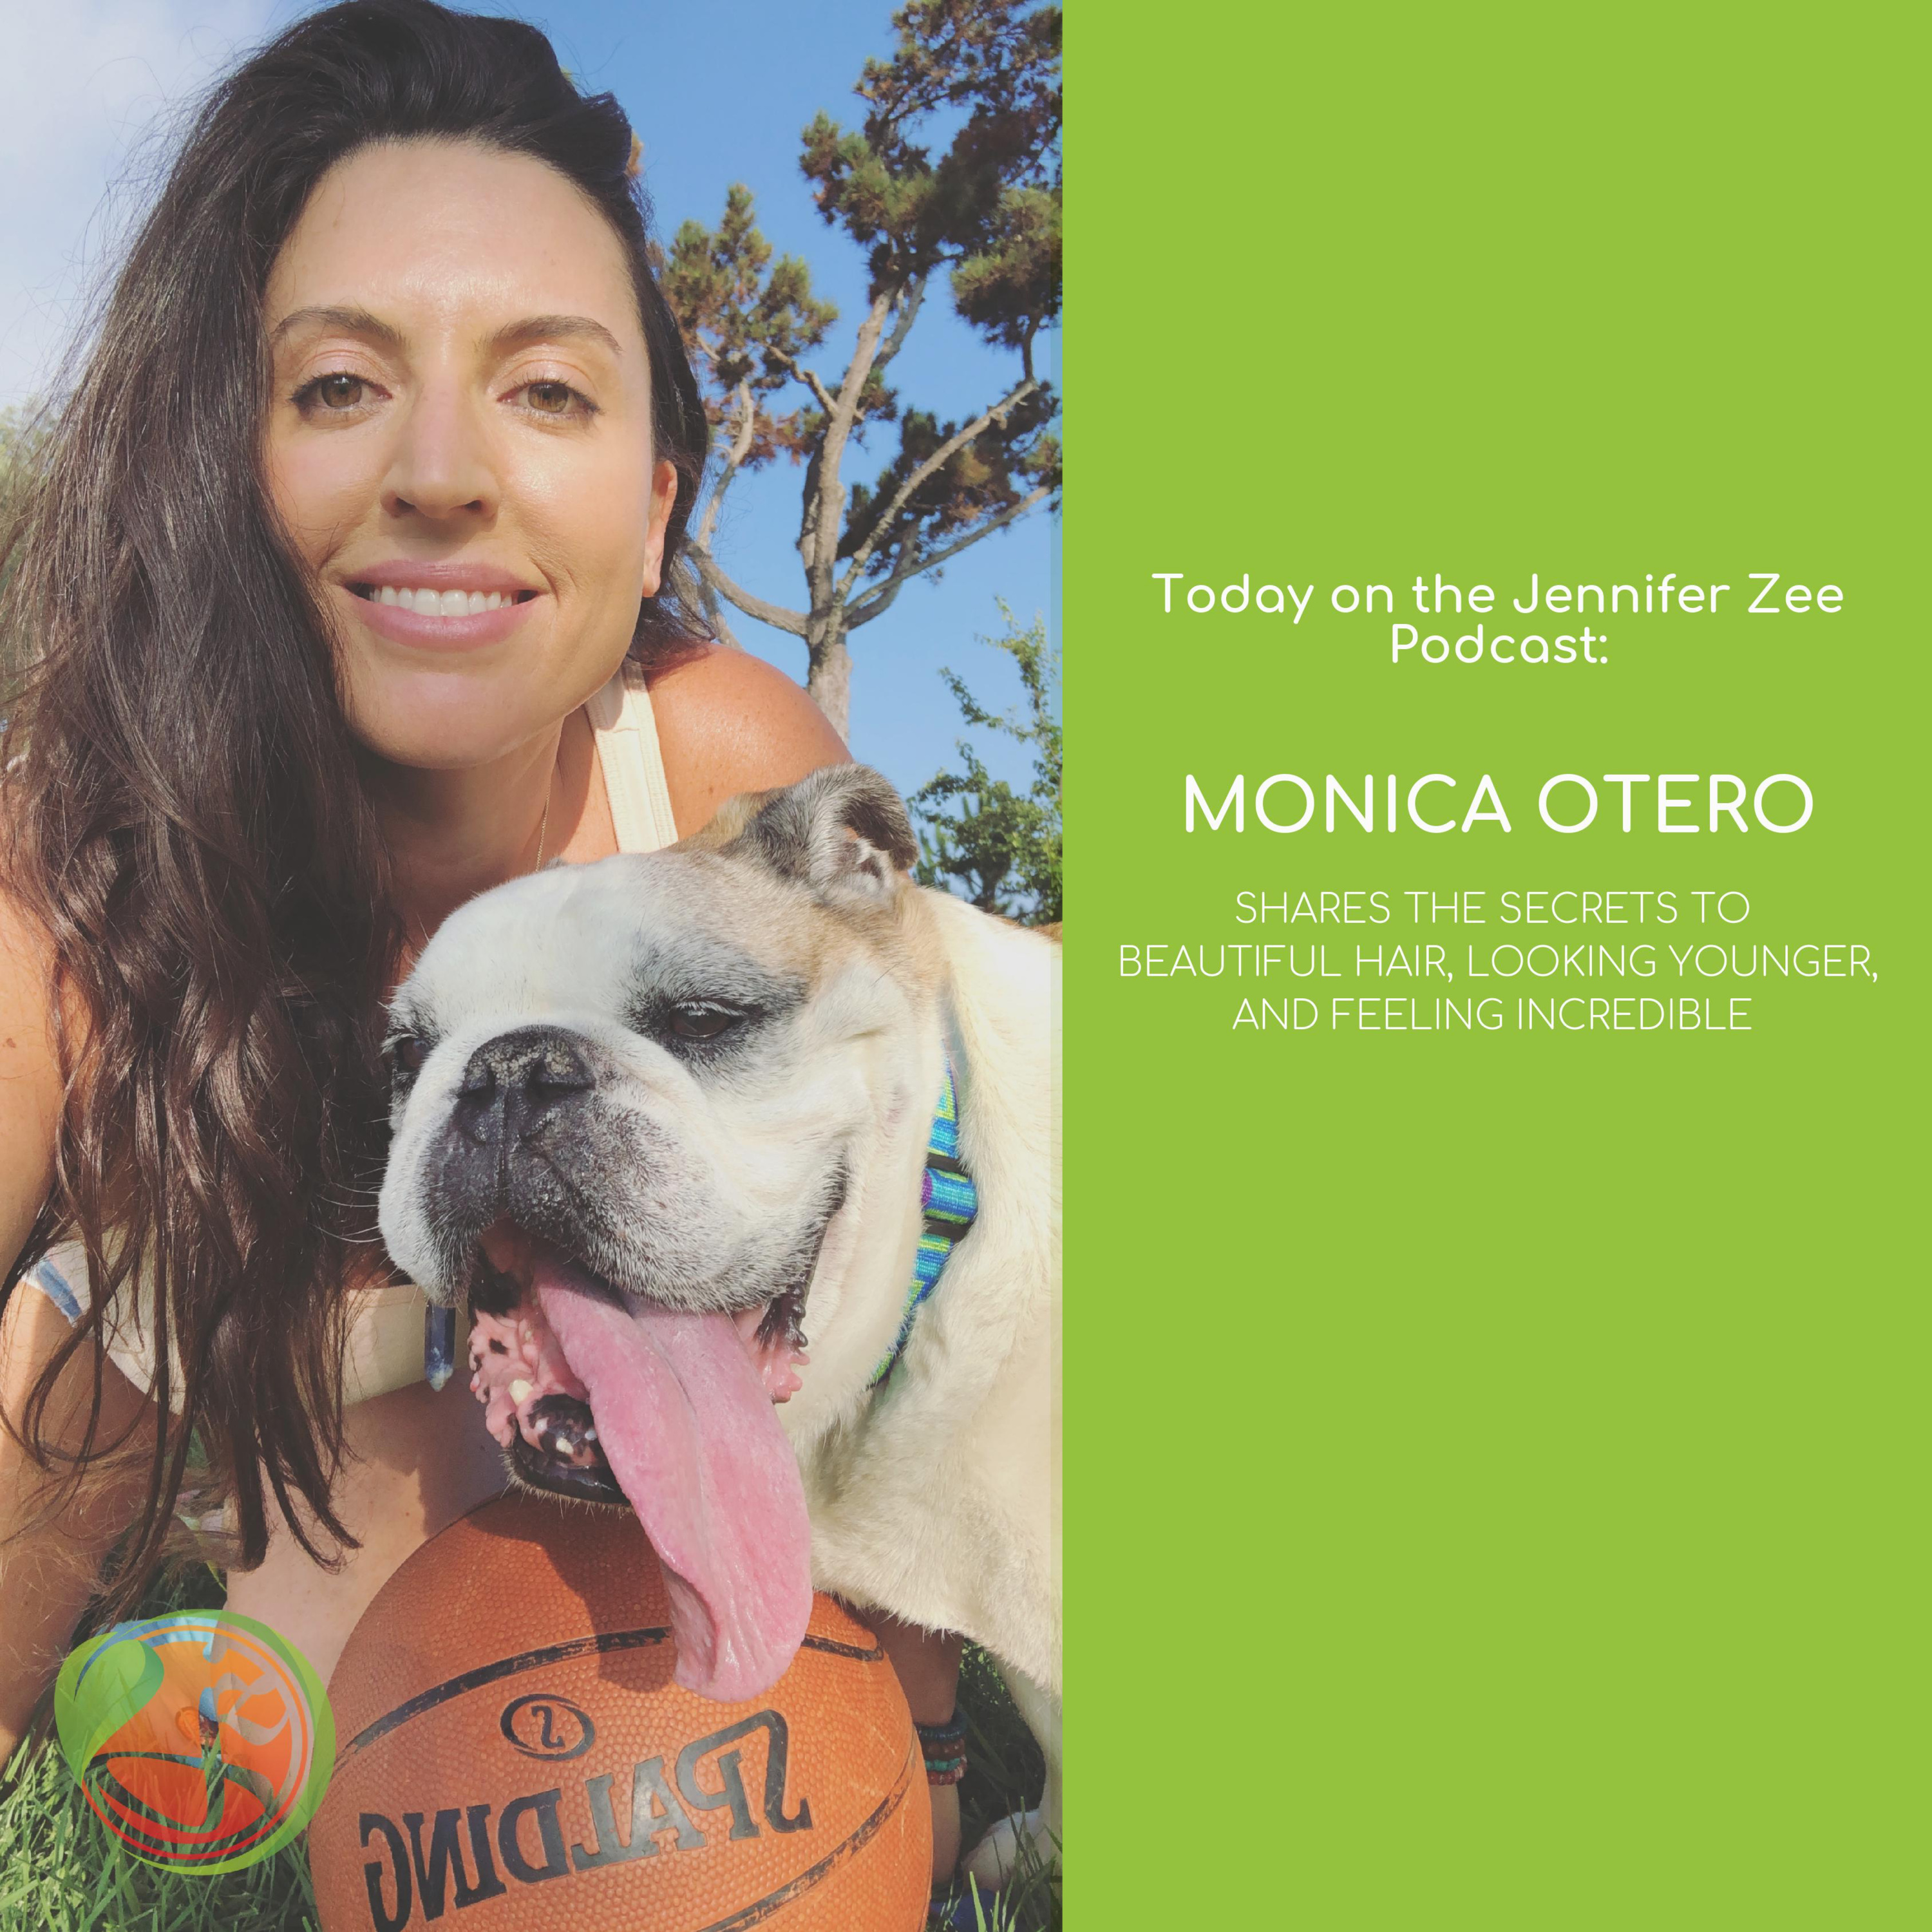 The Secrets to Beautiful Hair, Looking Younger, and Feeling Incredible with Monica Otero